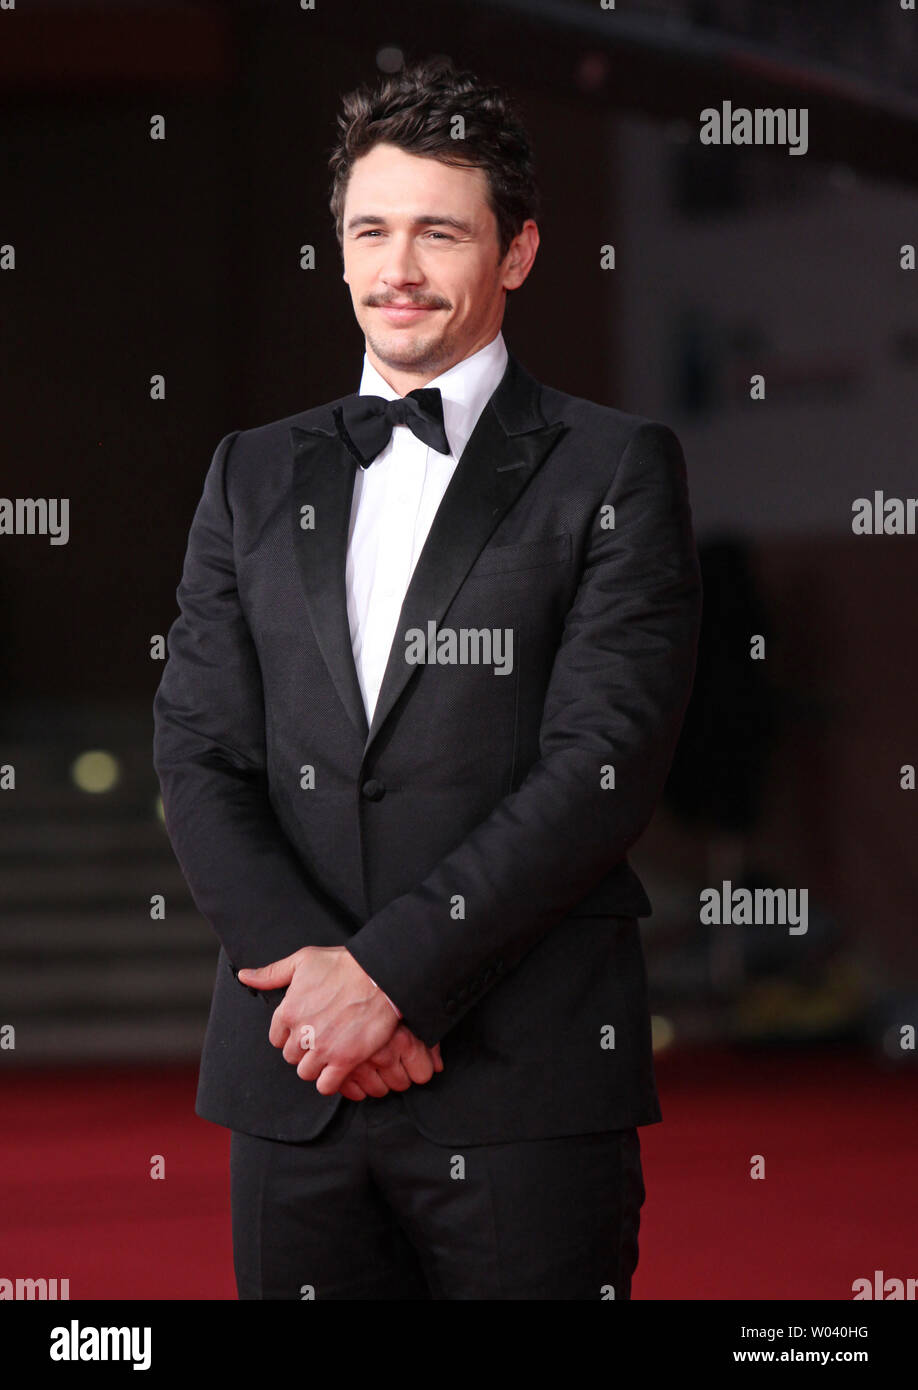 James Franco arrives on the red carpet before the screening of a digitally restored version of the 1960 classic film 'La Dolce Vita' during the 5th Rome International Film Festival in Rome on October 30, 2010.   UPI/David Silpa - Stock Image